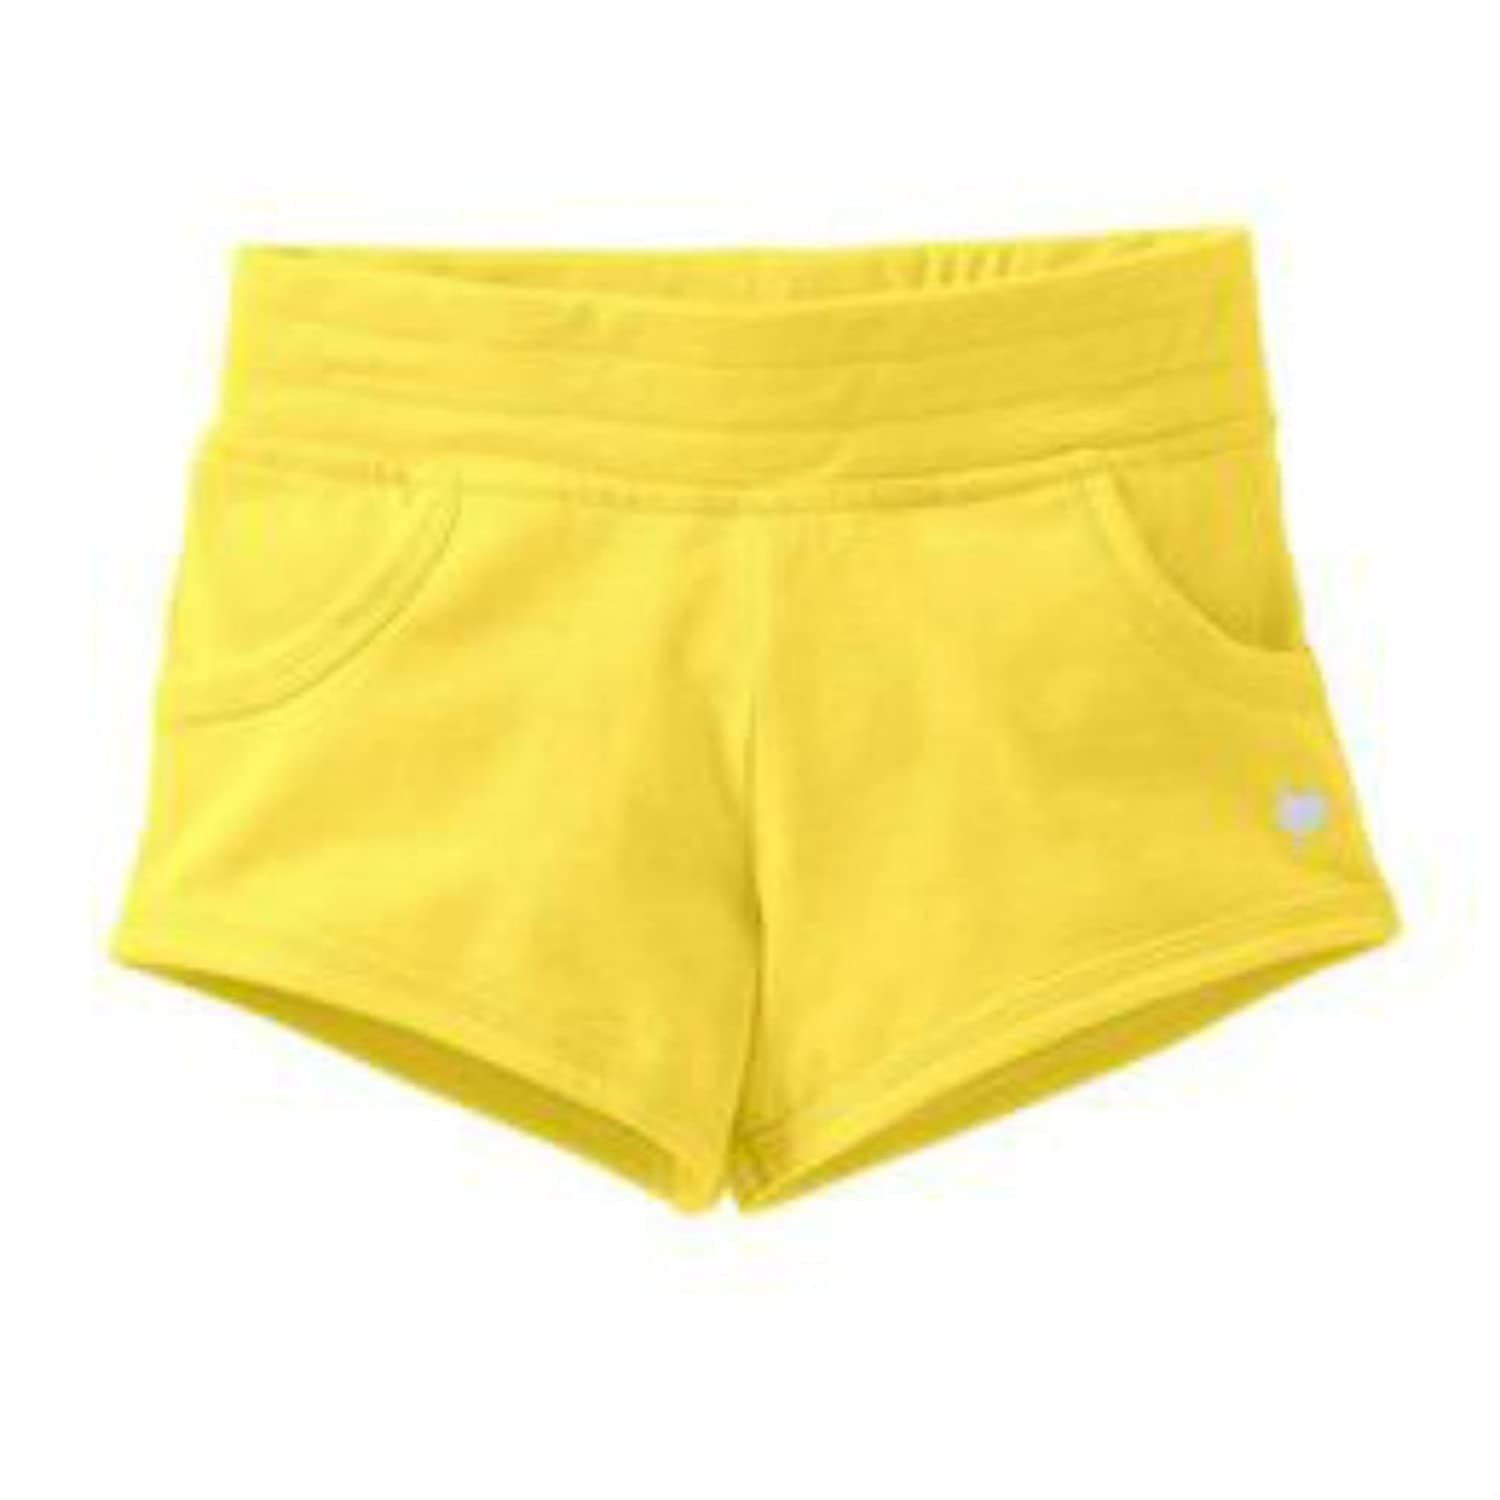 Carter's Kids/Girls Solid Knit Shorts Yellow (4)